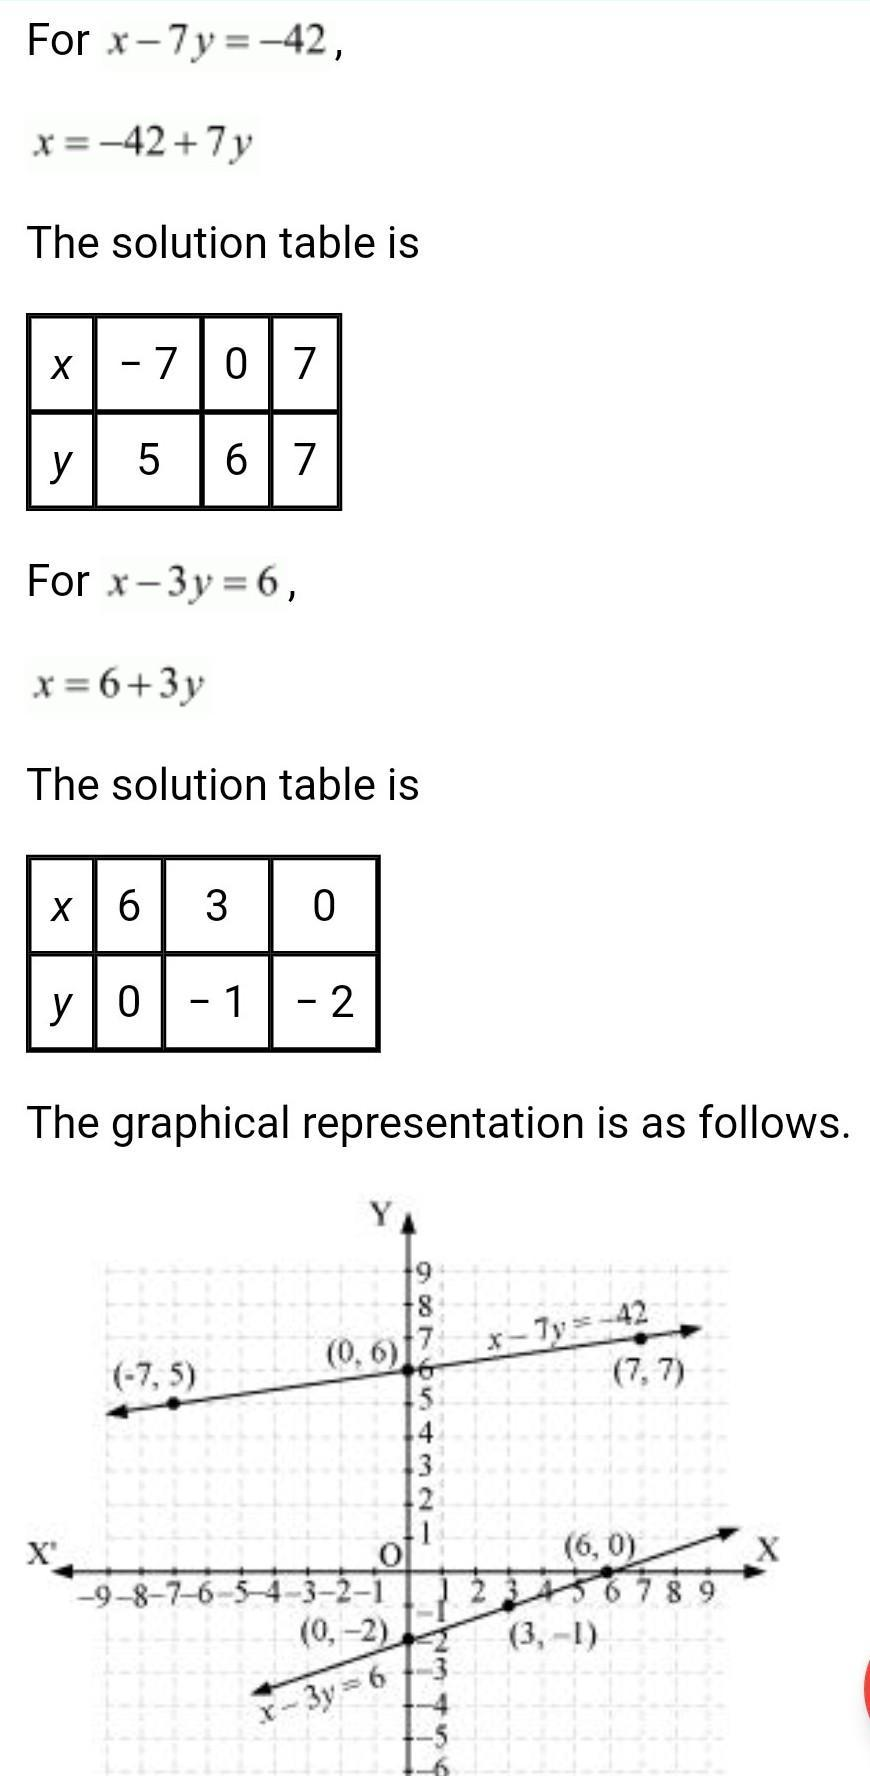 ed to look for solutions of the palllinear equations Fig